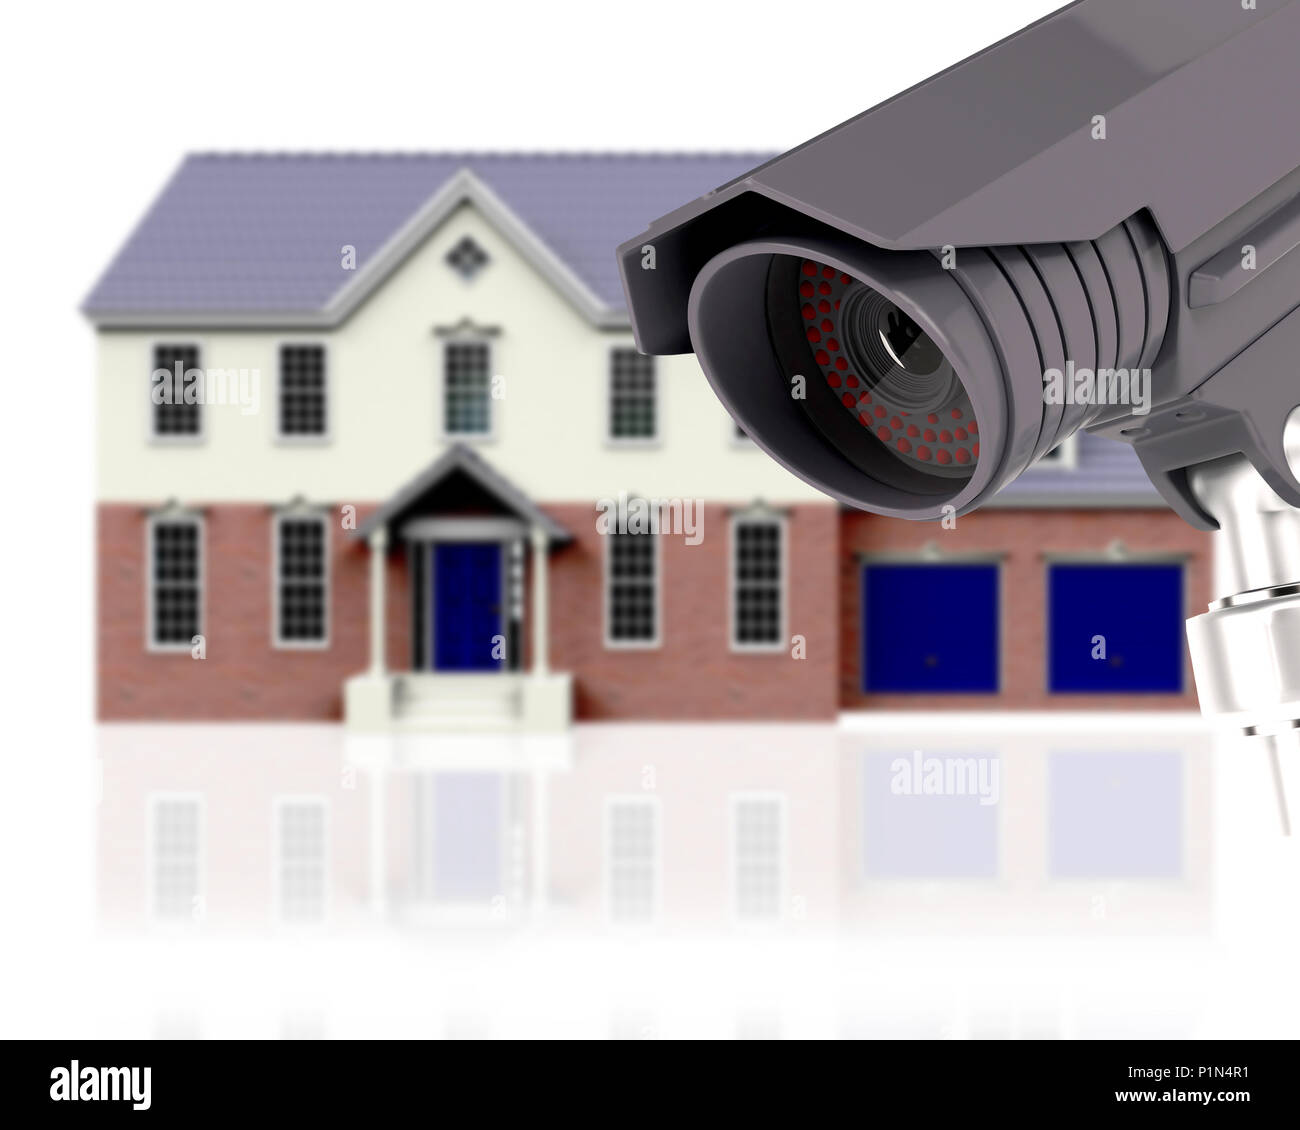 Cctv Home 3d Render Of A Defocussed House With Cctv Home Security Concept